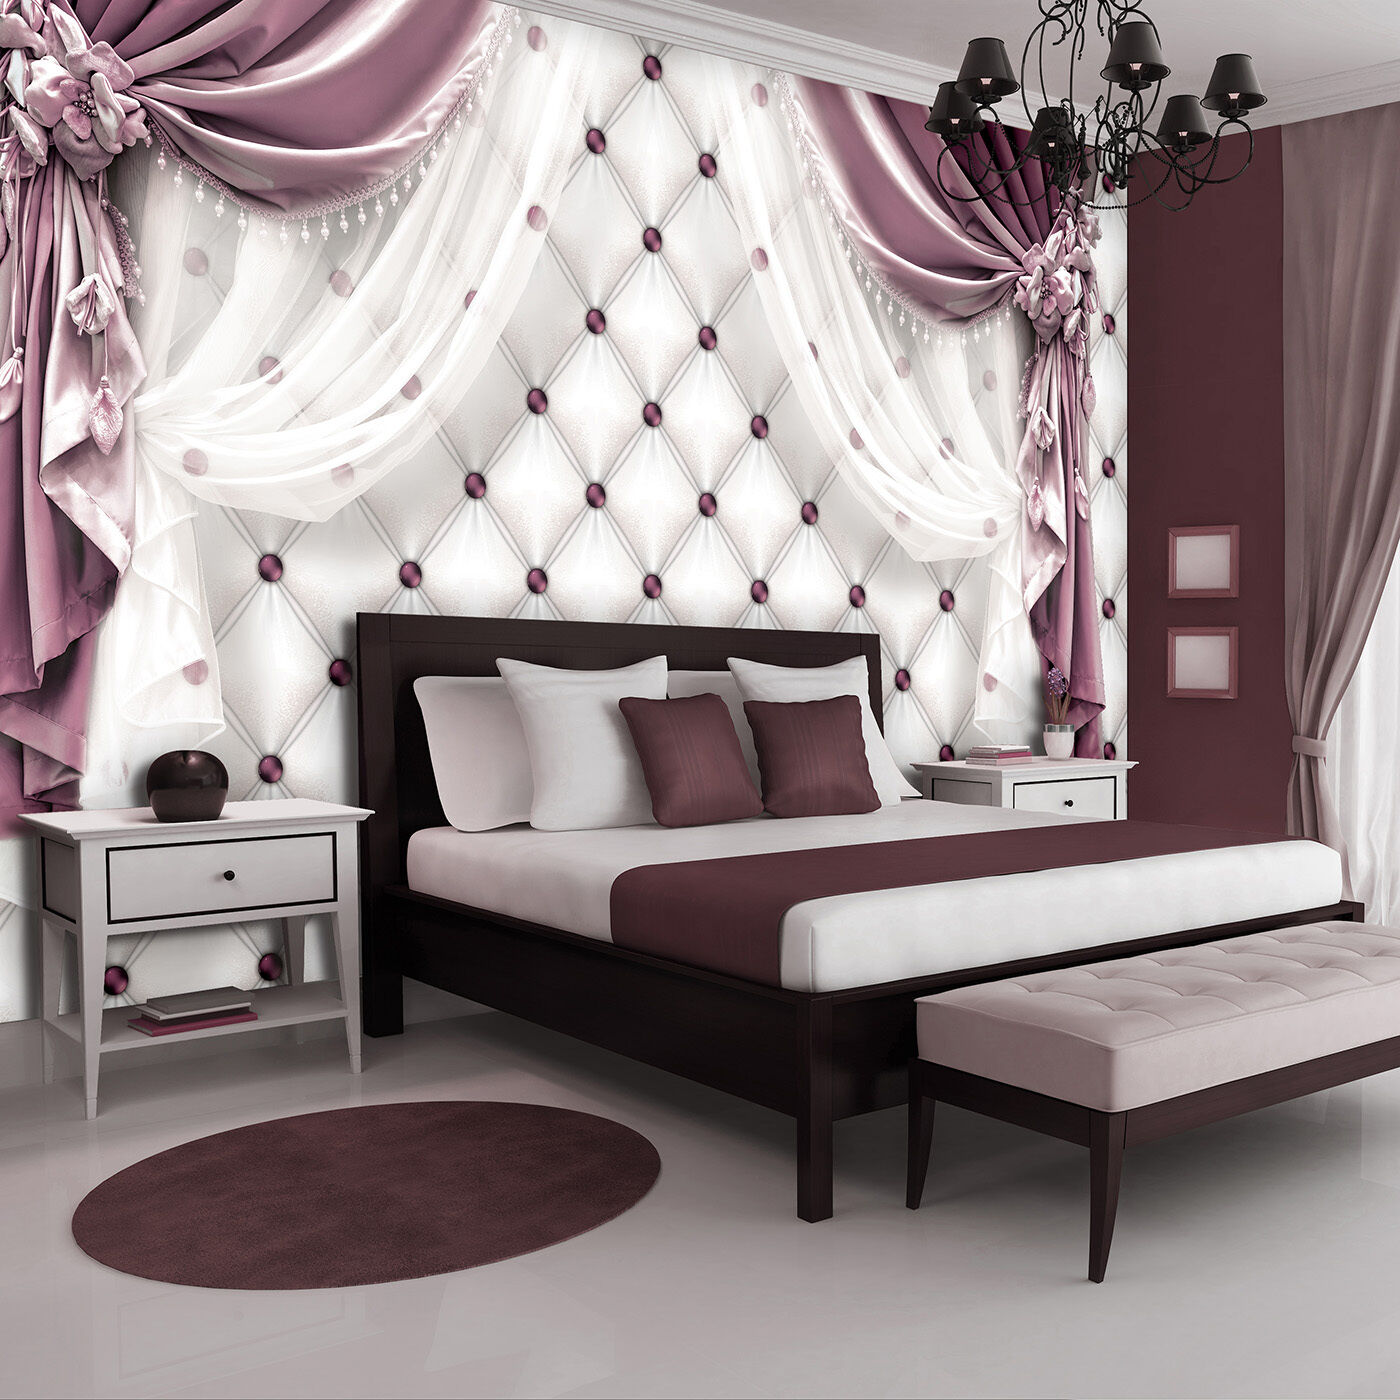 poster wandbild tapeten fototapete tapete stepp vorhang blumen rosa 3fx3560p8 eur 20 93. Black Bedroom Furniture Sets. Home Design Ideas